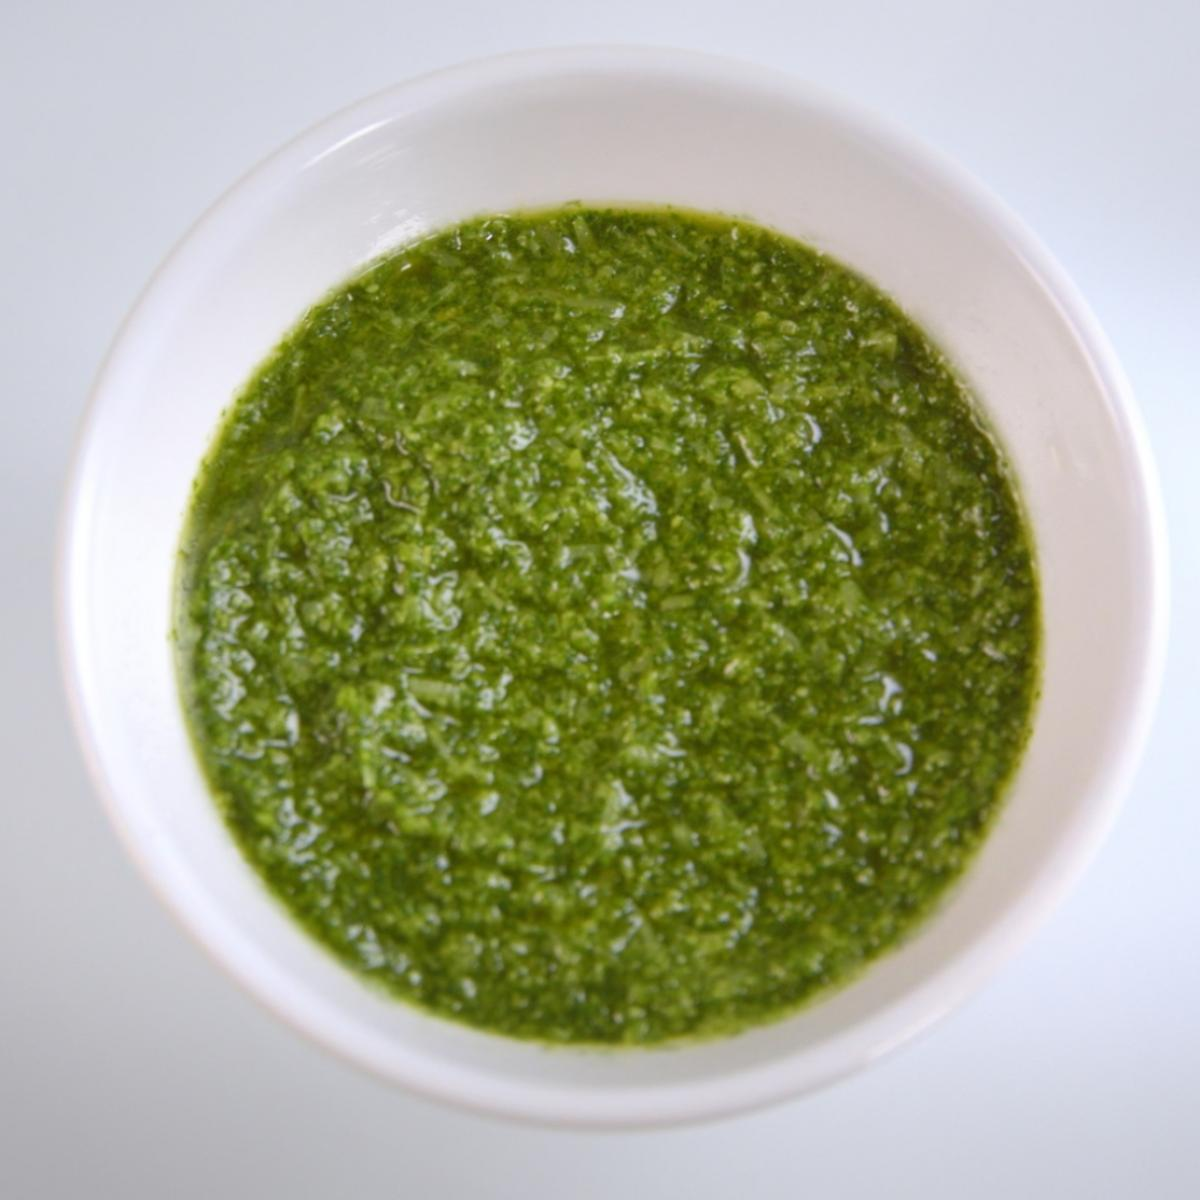 A picture of Delia's Home-made Pesto Sauce recipe